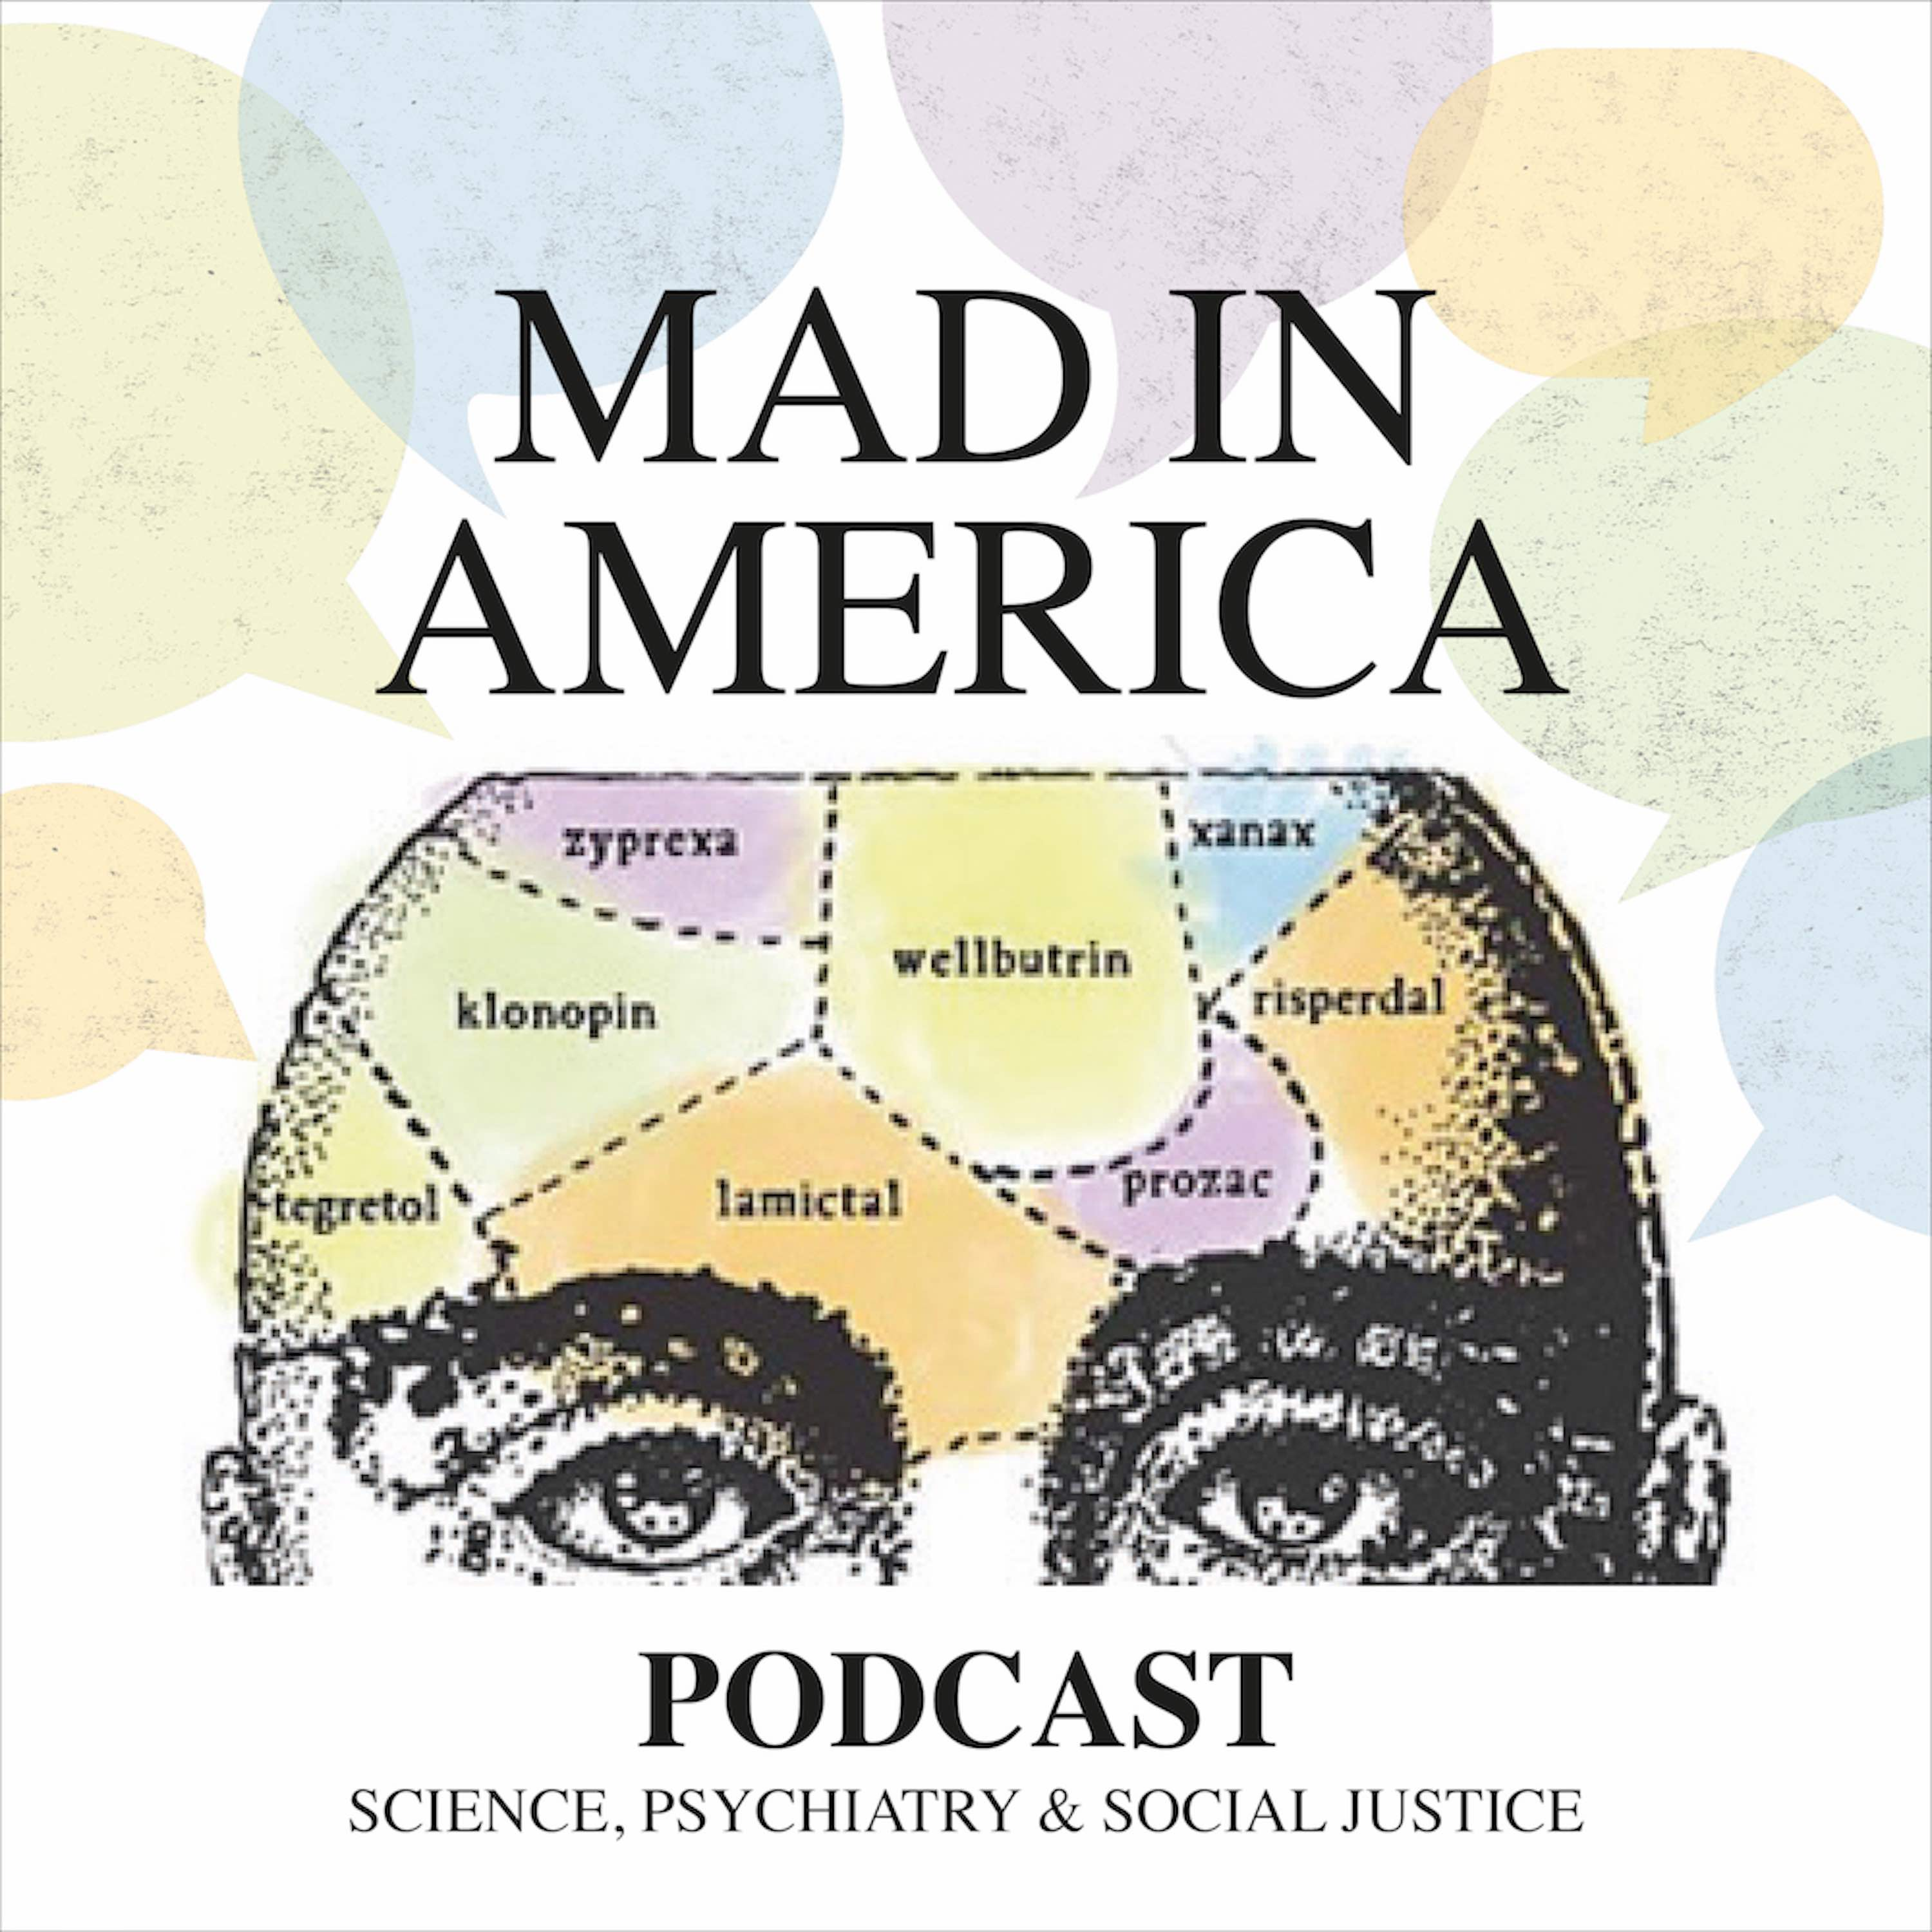 Mad in America: Rethinking Mental Health - Conflicts of Interest Questioned in Review of Prescribed Drug Dependence